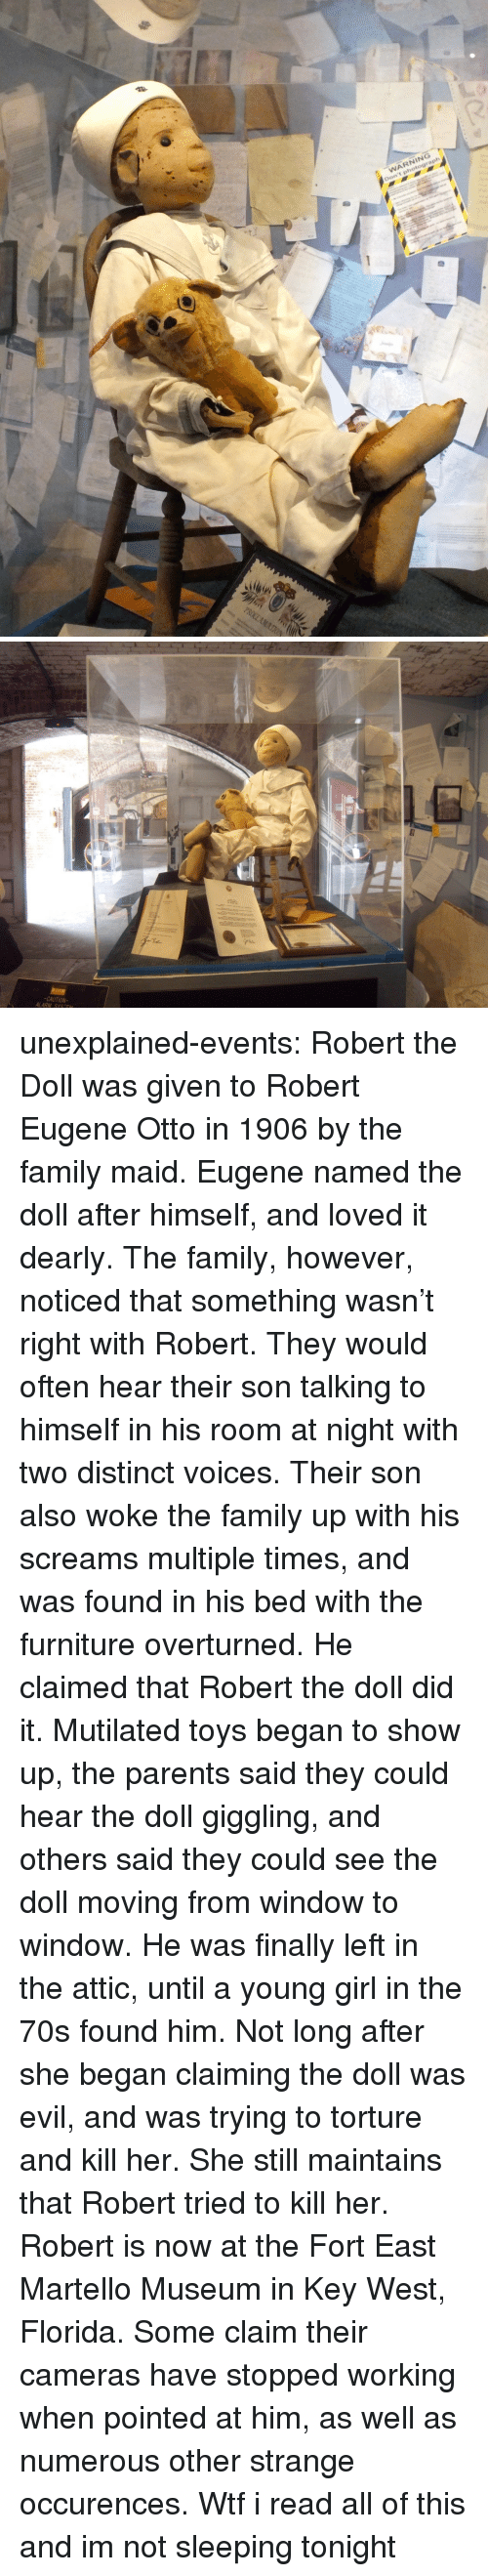 Family, Parents, and Target: WARNING  Don't photograph   CAUTION  ALARM SYSTEM unexplained-events:  Robert the Doll was given to Robert Eugene Otto in 1906 by the family maid. Eugene named the doll after himself, and loved it dearly. The family, however, noticed that something wasn't right with Robert. They would often hear their son talking to himself in his room at night with two distinct voices. Their son also woke the family up with his screams multiple times, and was found in his bed with the furniture overturned. He claimed that Robert the doll did it. Mutilated toys began to show up, the parents said they could hear the doll giggling, and others said they could see the doll moving from window to window. He was finally left in the attic, until a young girl in the 70s found him. Not long after she began claiming the doll was evil, and was trying to torture and kill her. She still maintains that Robert tried to kill her. Robert is now at the Fort East Martello Museum in Key West, Florida. Some claim their cameras have stopped working when pointed at him, as well as numerous other strange occurences.   Wtf i read all of this and im not sleeping tonight